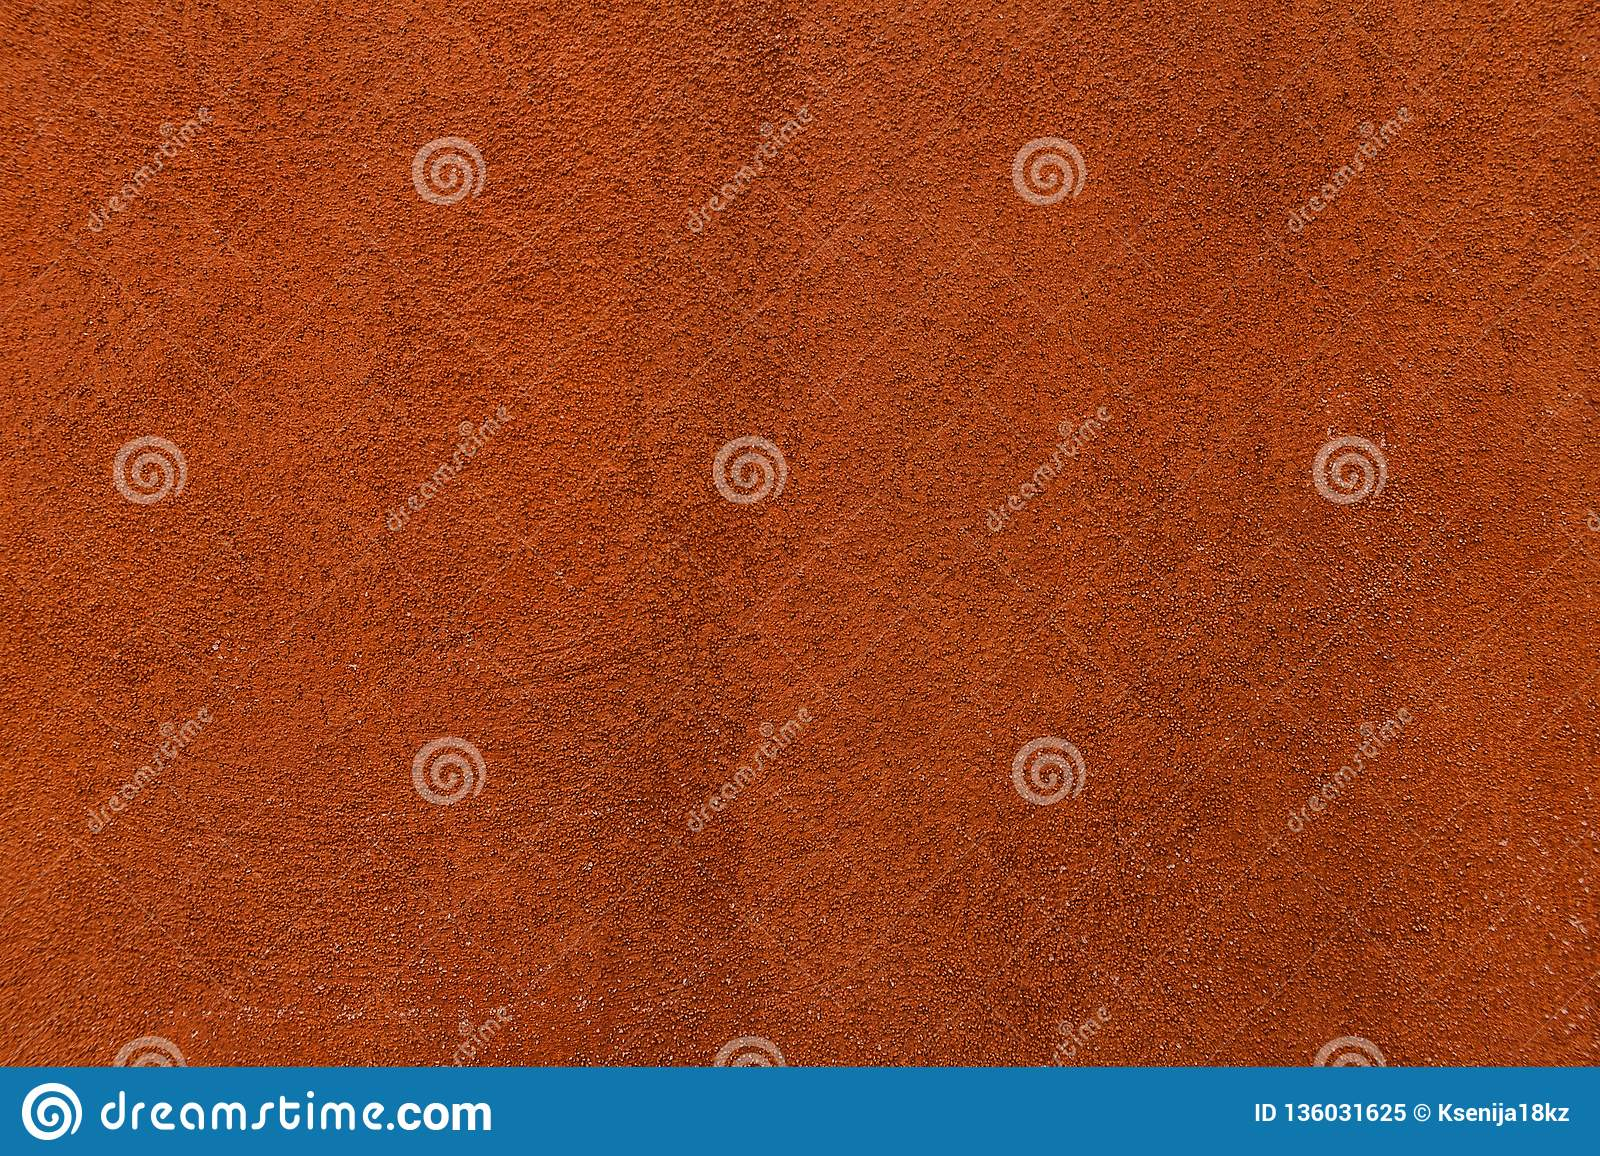 Orange Paint Texture Of Old Building Wall Stock Image Image Of